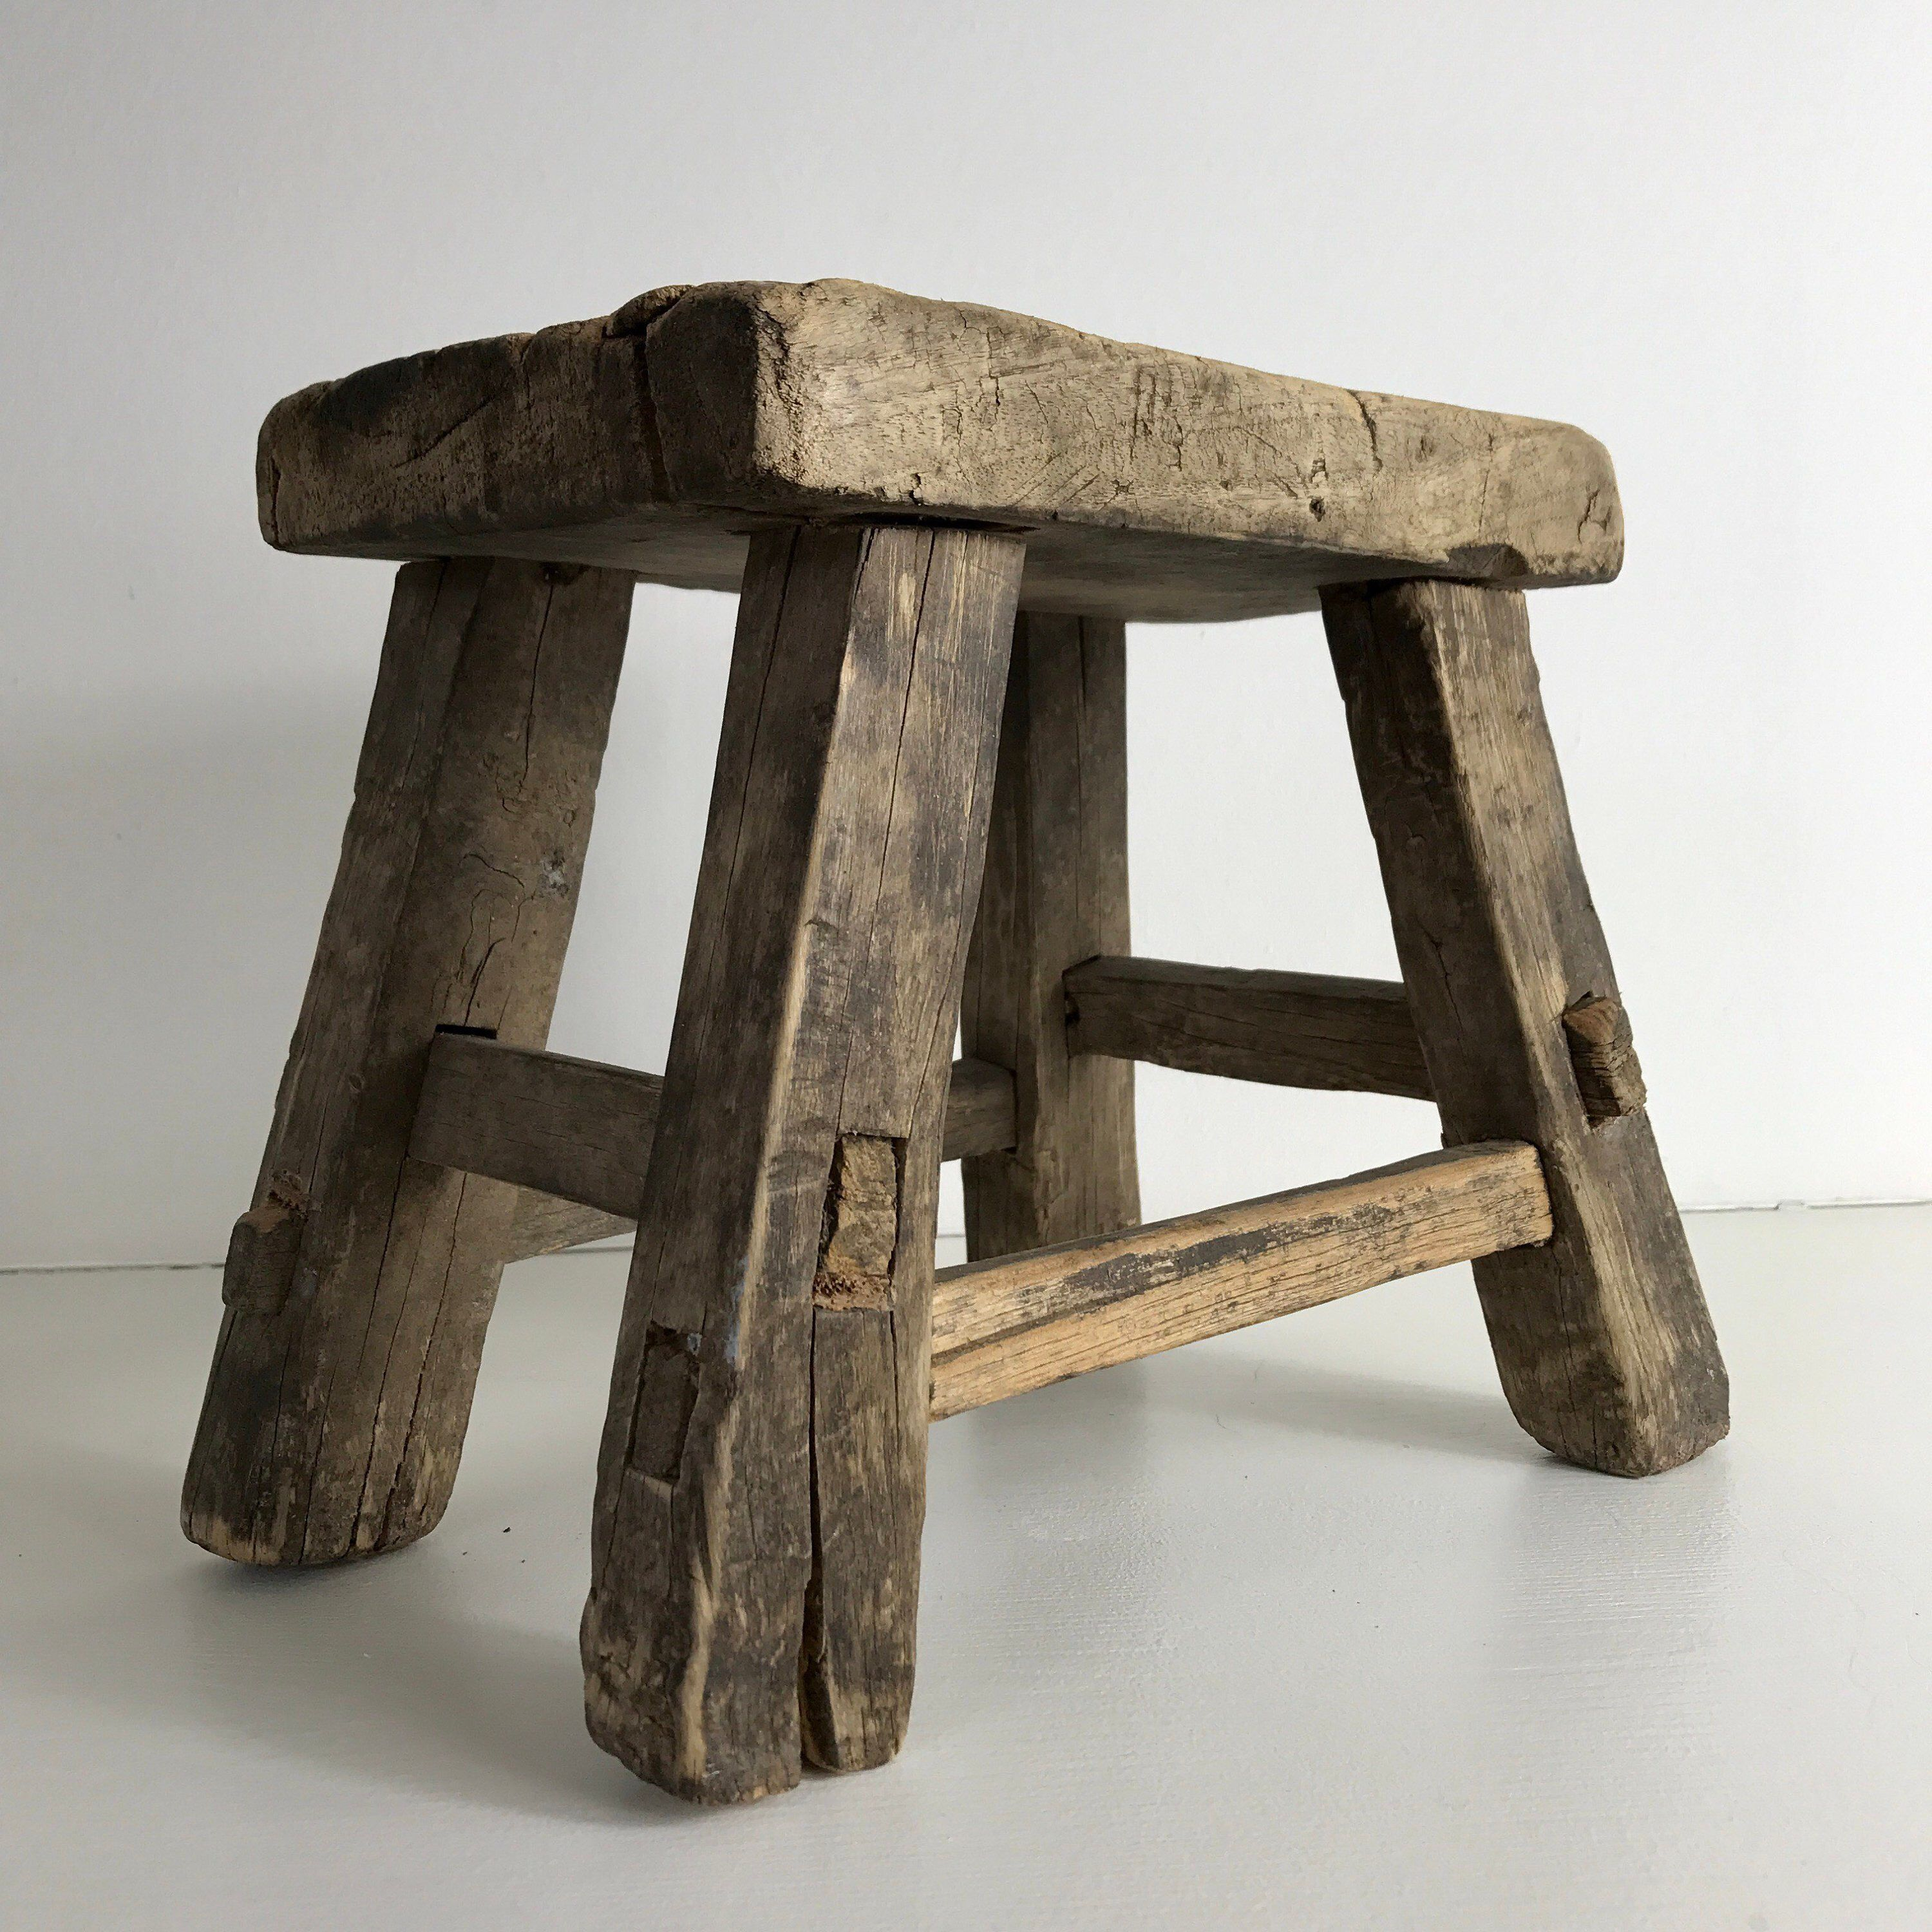 Small vintage wooden stool, side table antique bench